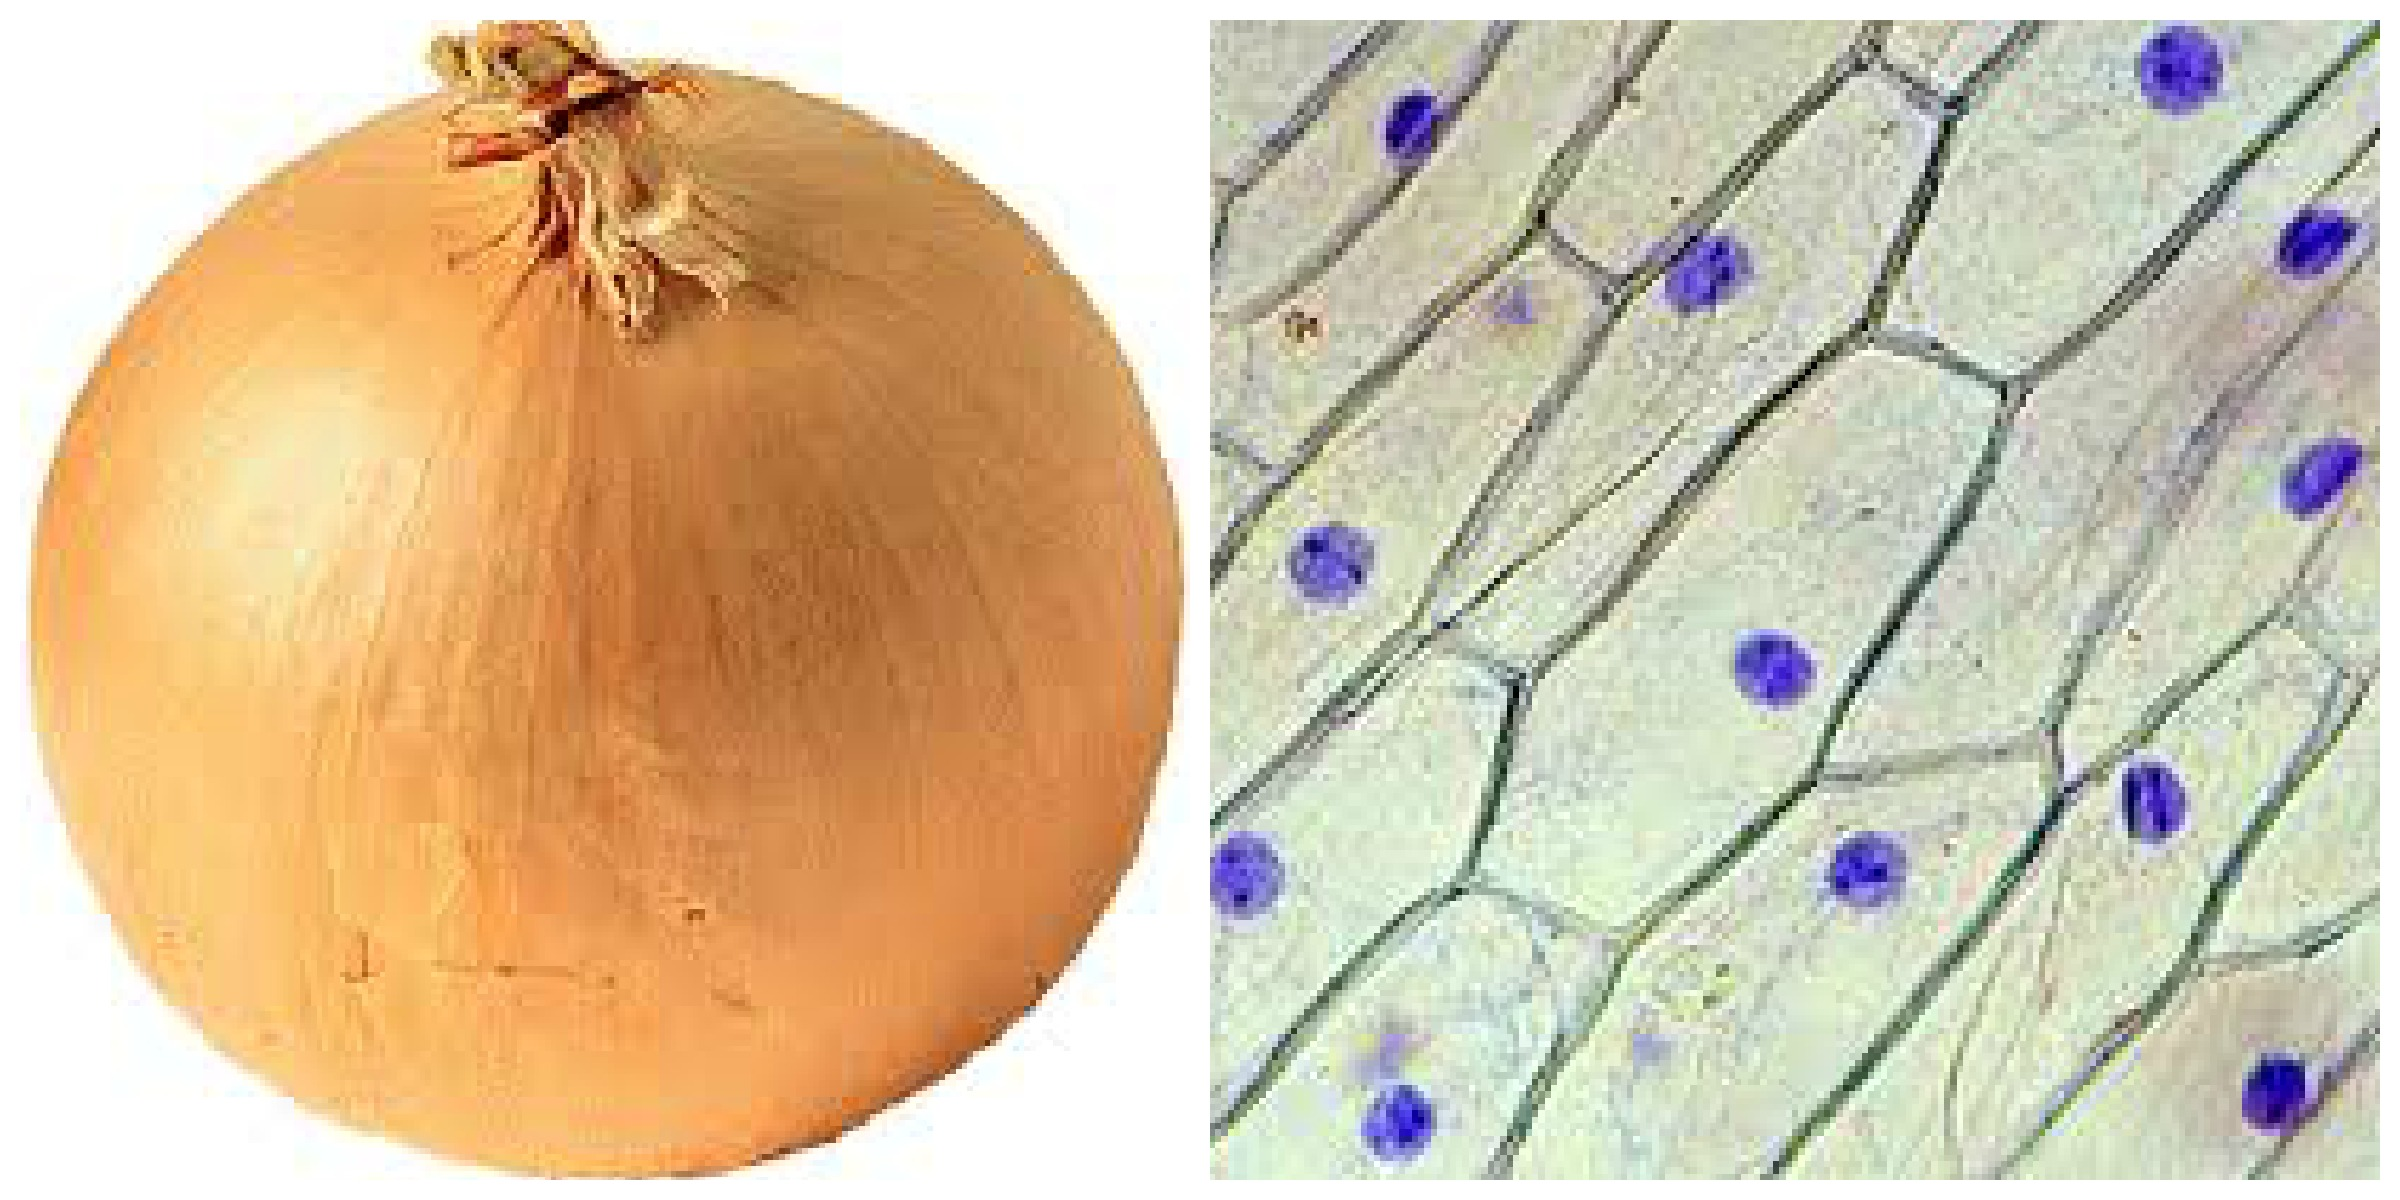 Onion cell shape